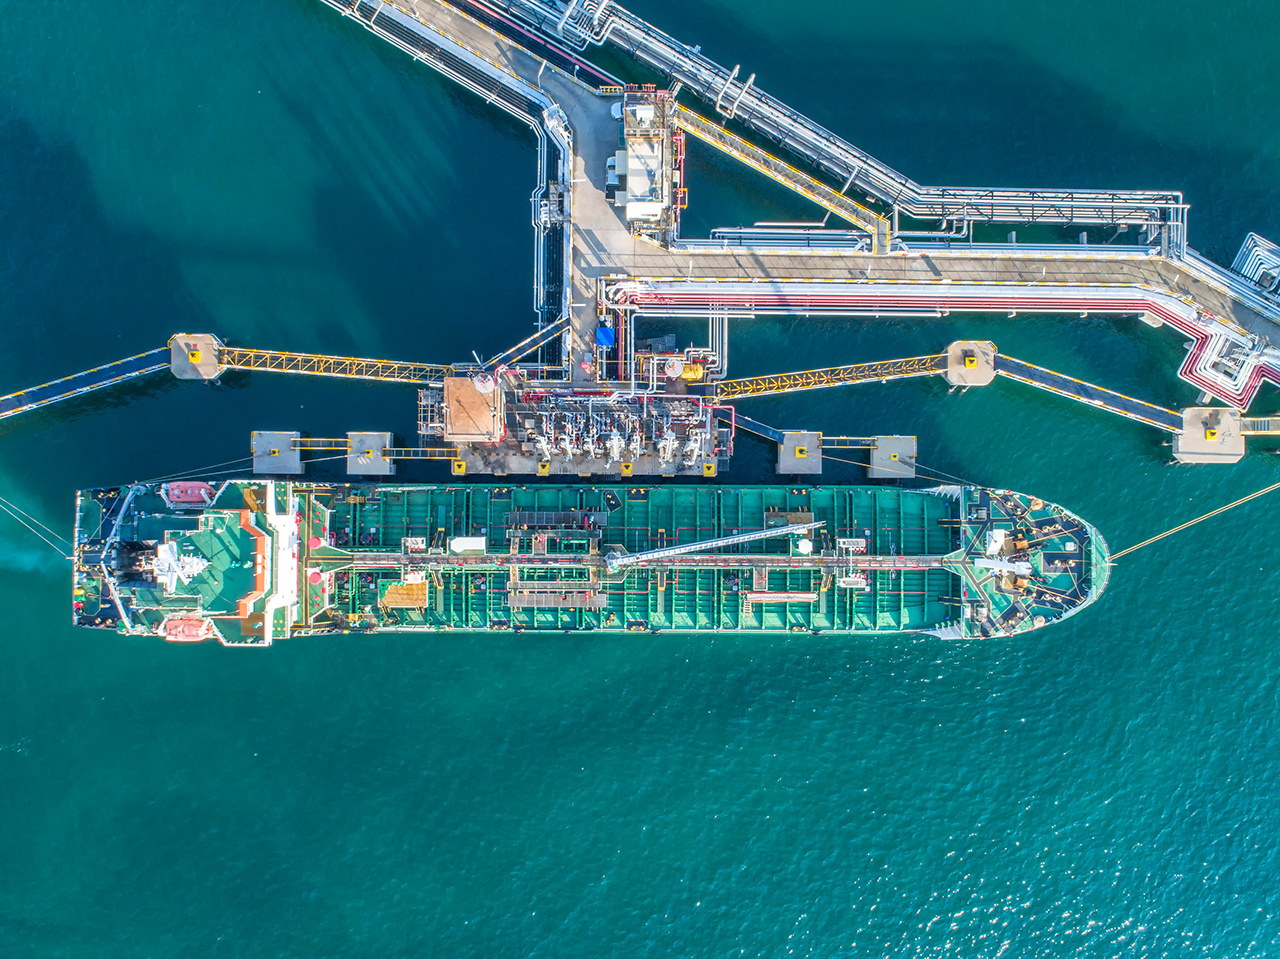 oil tanker, gas tanker in the high sea.Refinery Industry cargo ship,aerial view,Thailand, in import export, LPG,oil refinery, Logistics and transportation with working crane bridge in harbor